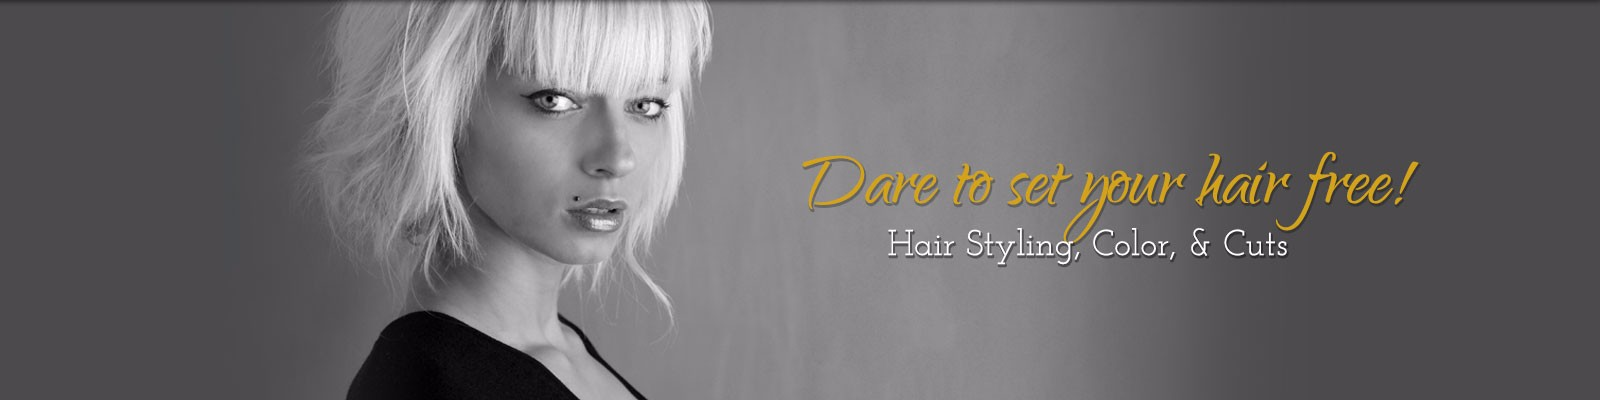 Hair Styling by Salon James in Lehigh Valley PA